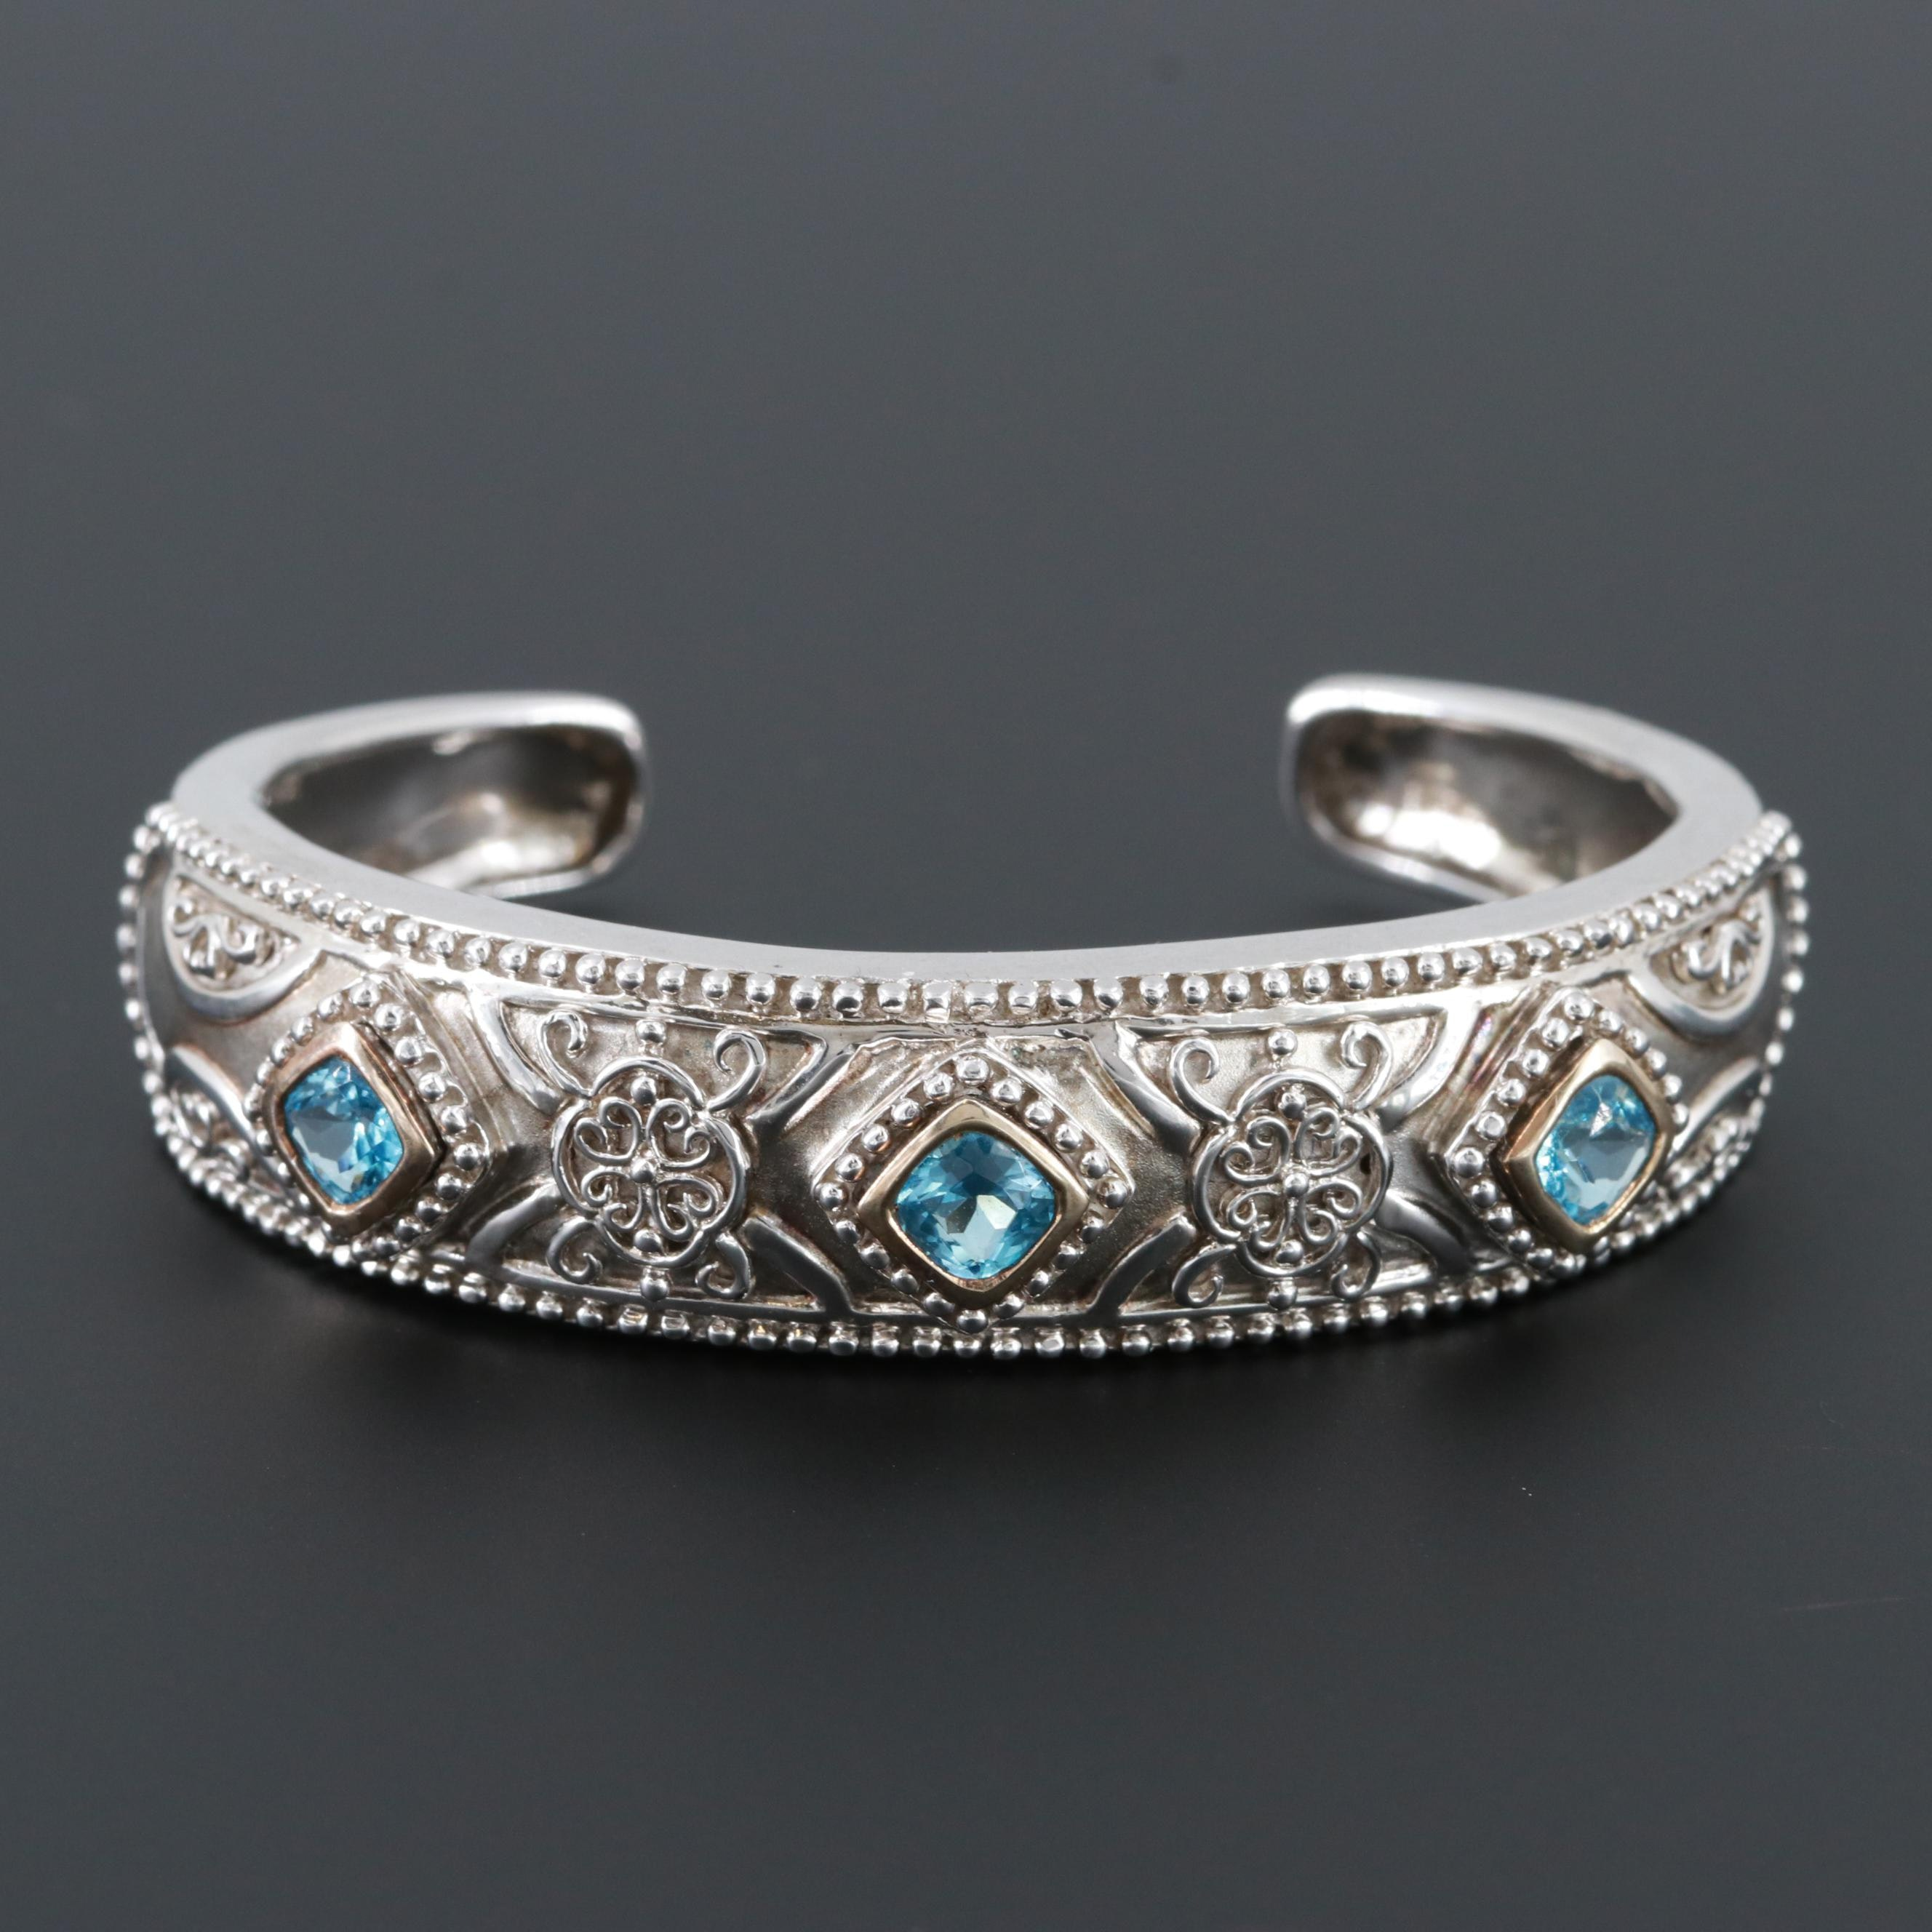 Sterling Silver Blue Topaz Cuff Bracelet with 14K White Gold Accents